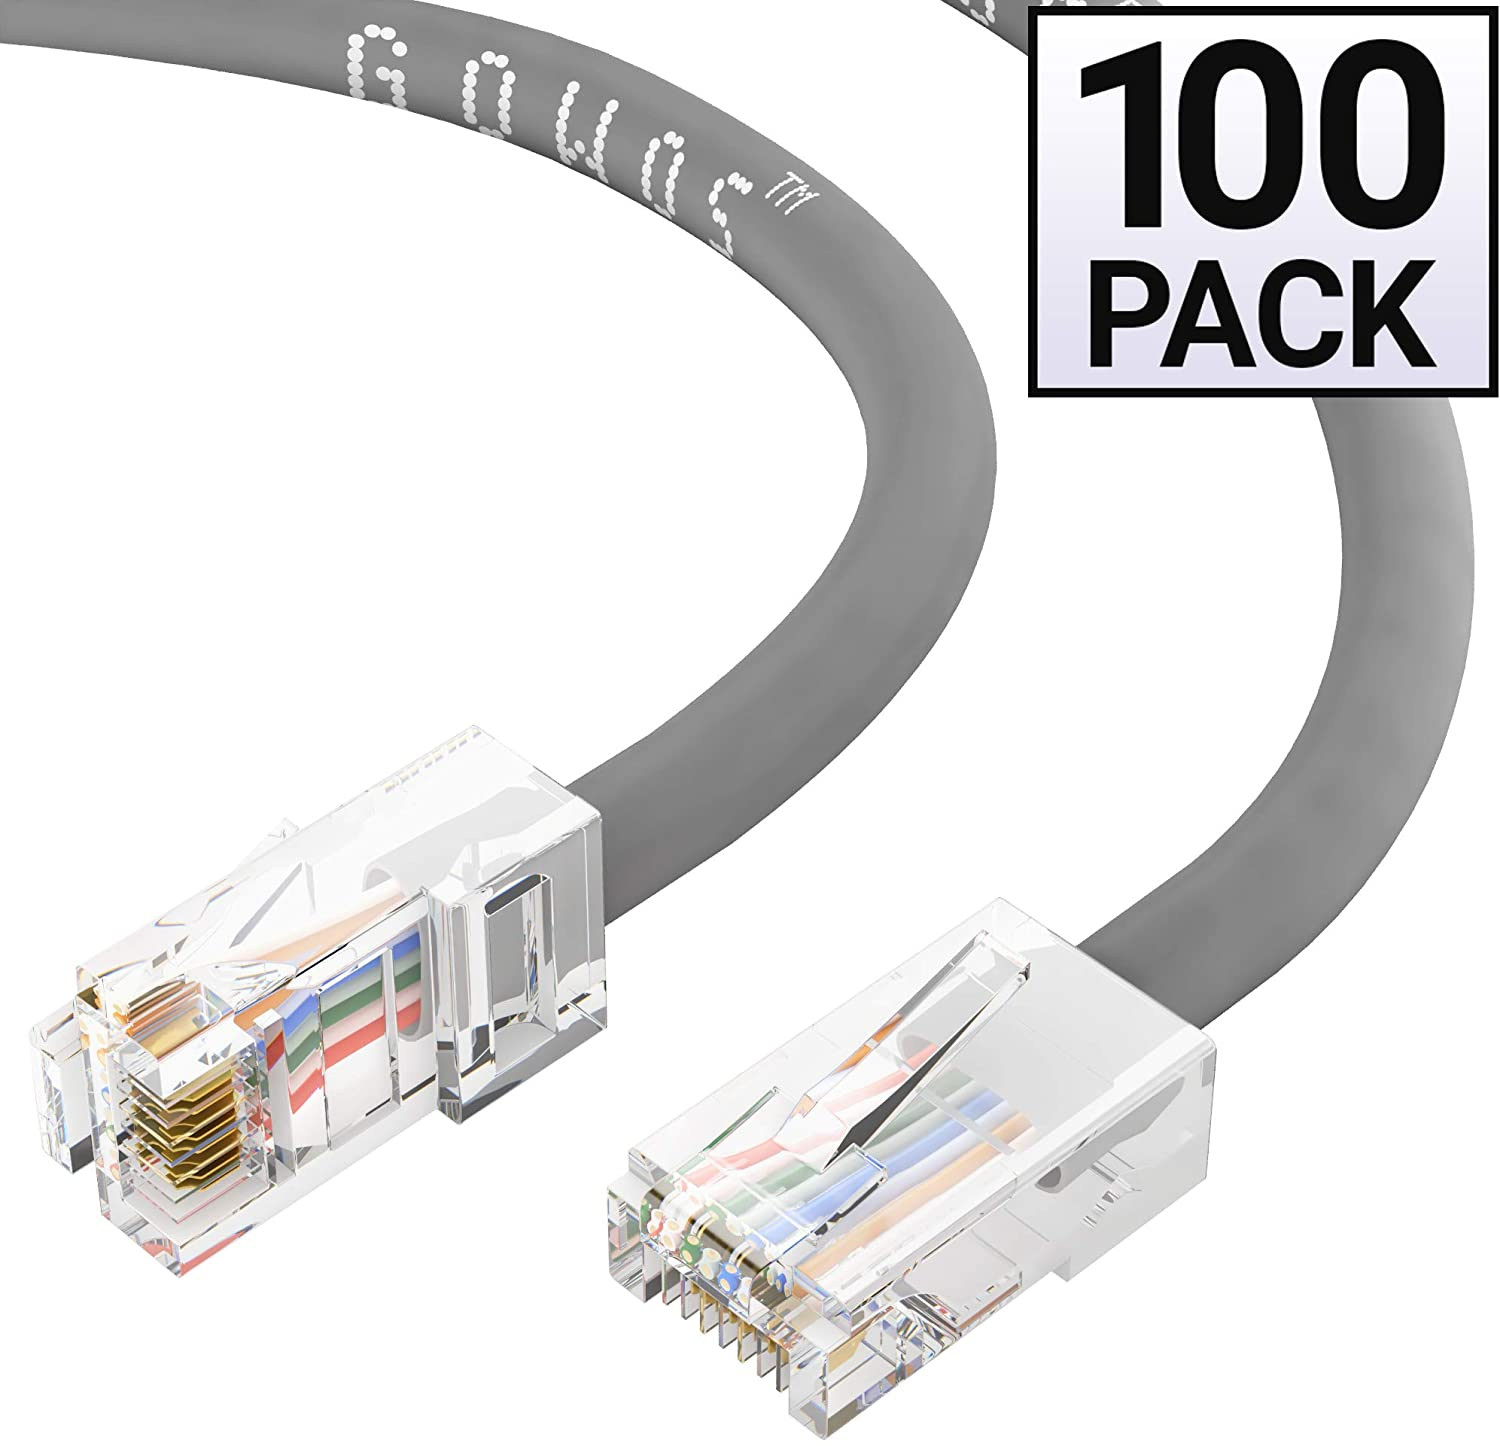 GOWOS Cat5e Ethernet Cable (100-Pack - 50 Feet) Gray - 24AWG Network Cable with Gold Plated RJ45 Non-Booted Connector - 1Gigabit/Sec High Speed LAN Internet/Patch Cable - 350MHz